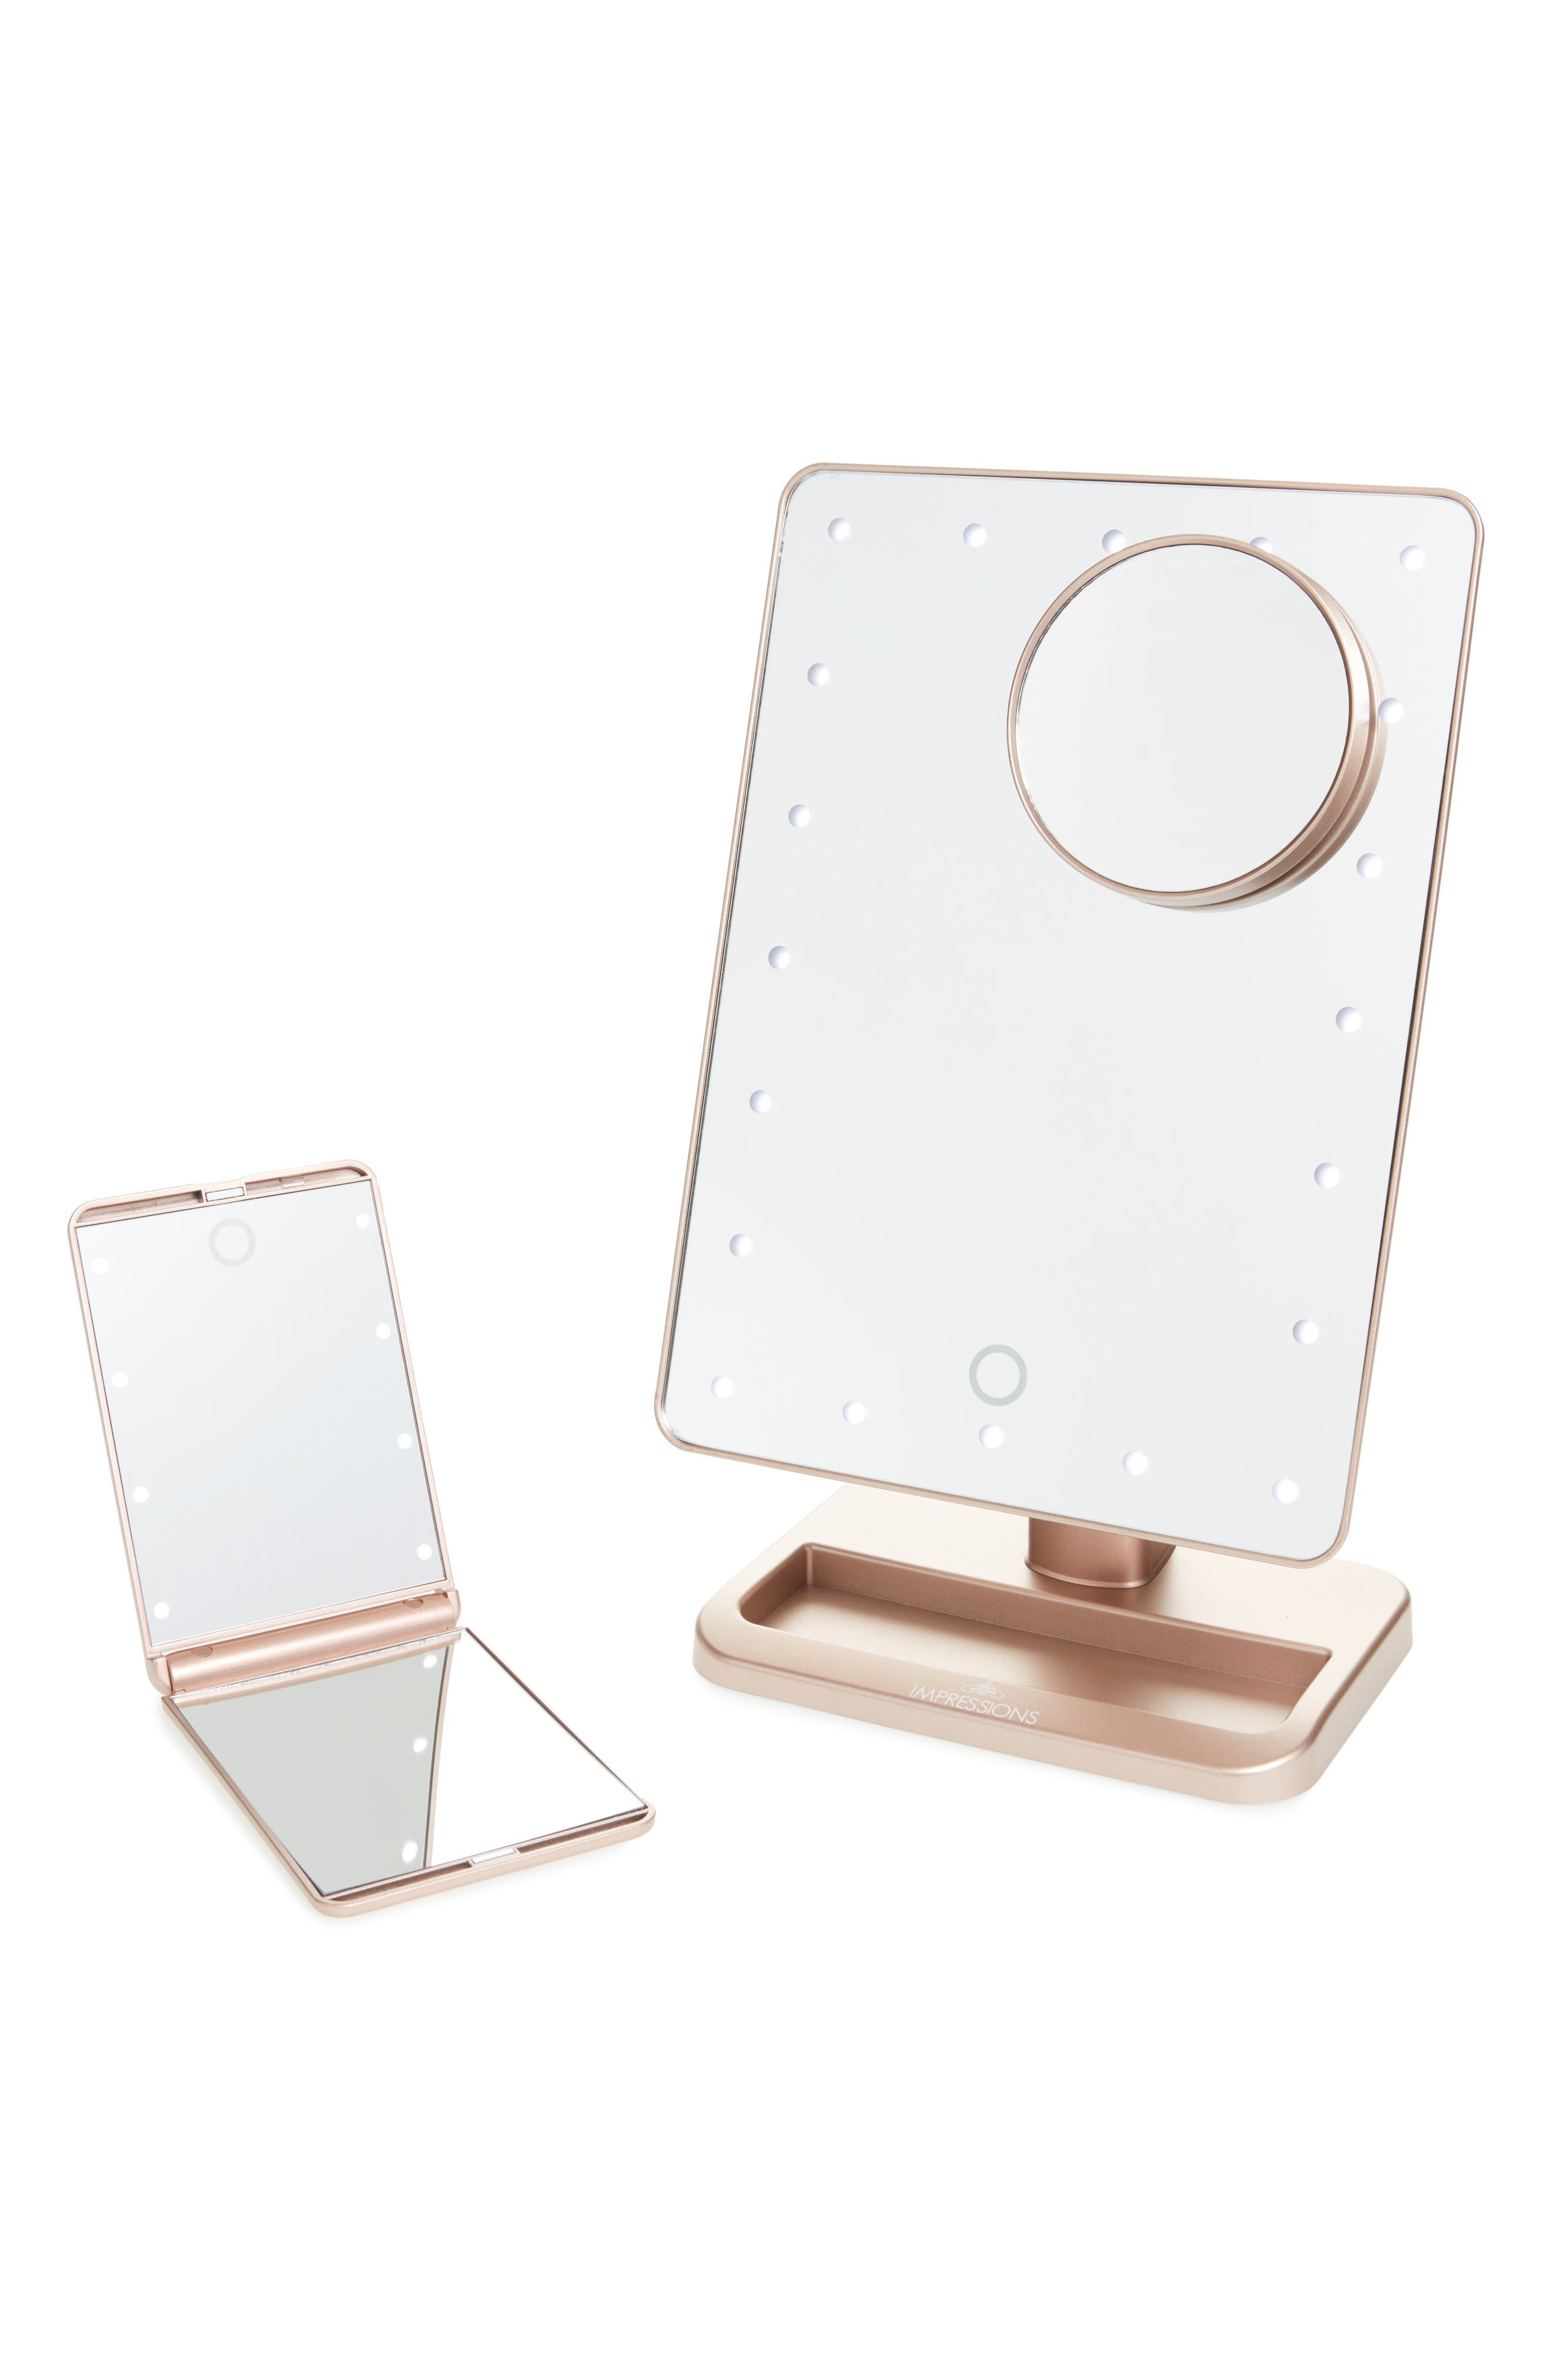 Touch XL Dimmable LED Makeup Mirror with Removable 5x Mirror & Compact Mirror,                             Main thumbnail 1, color,                             ROSE GOLD/ ROSE GOLD